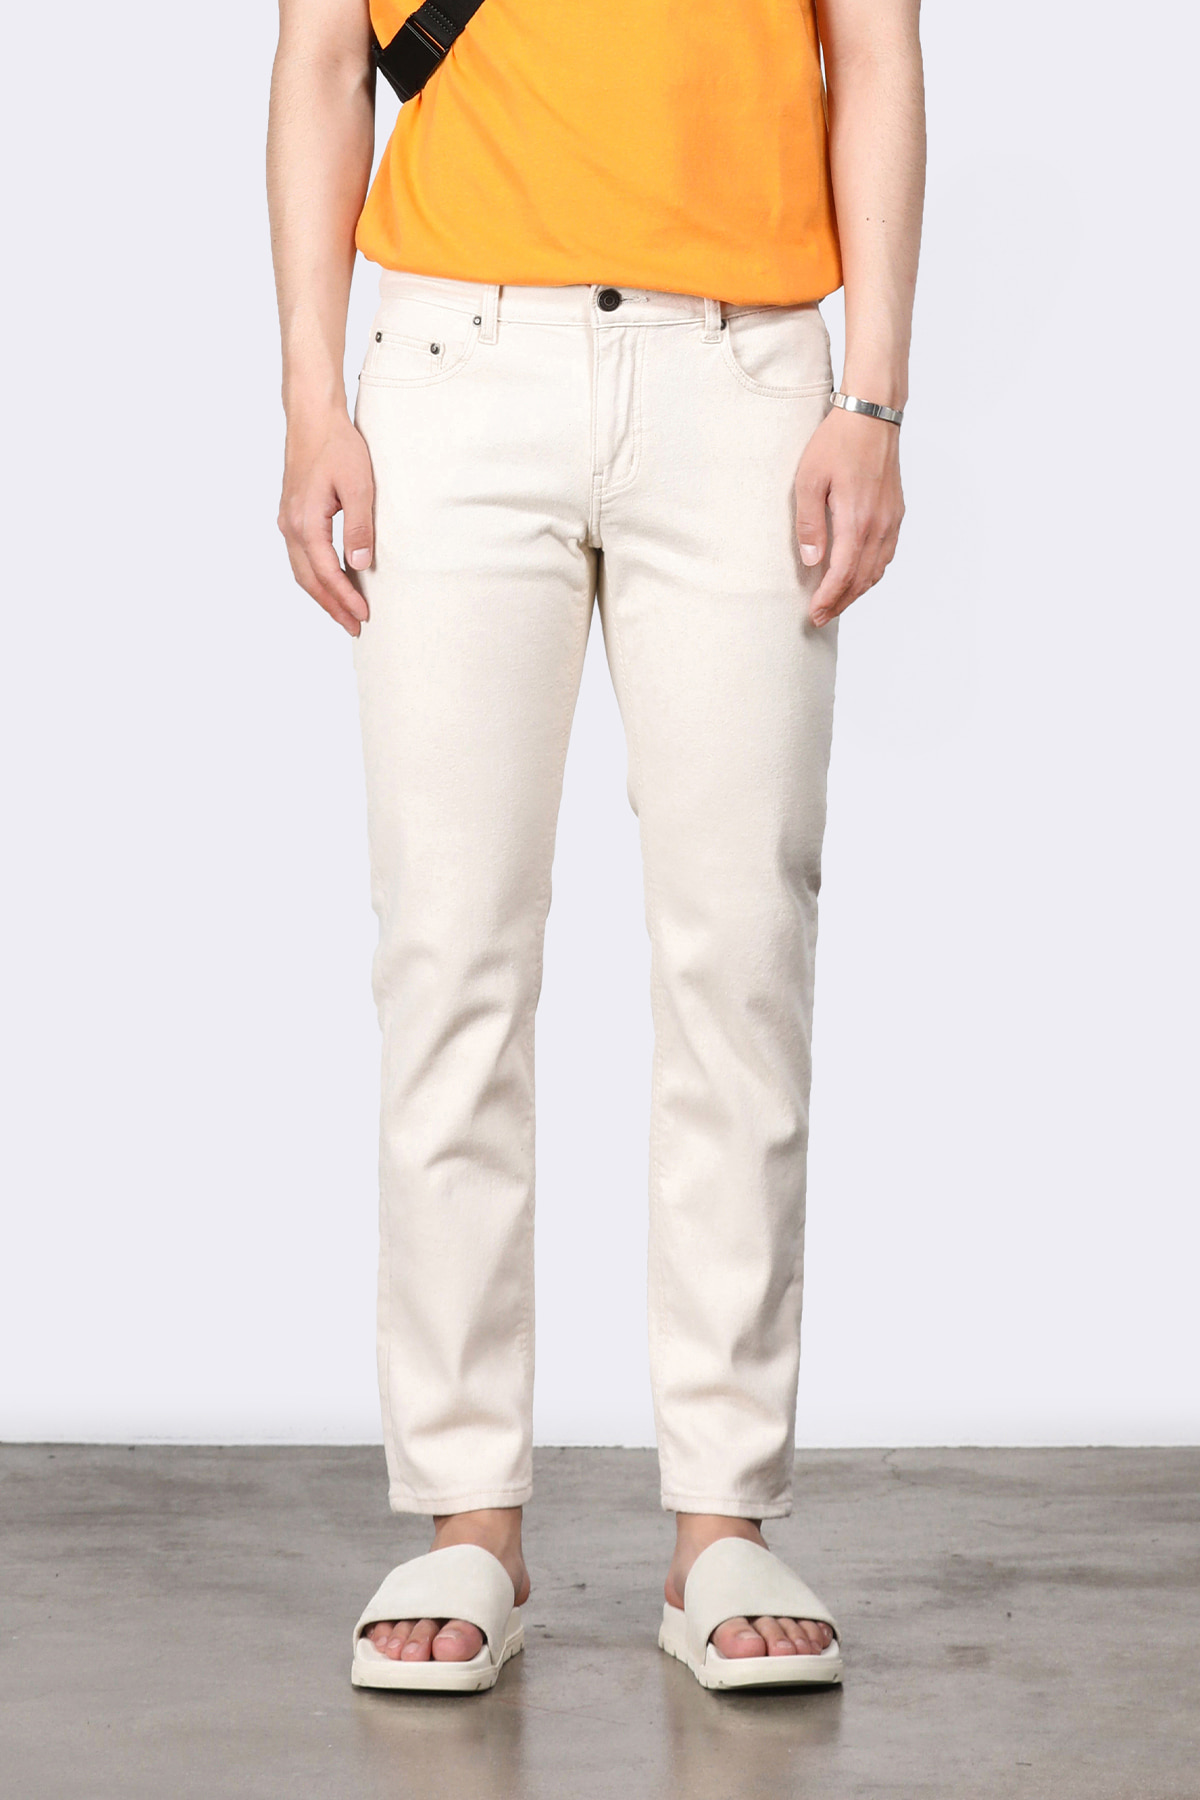 #0208 off-white slim crop jeans